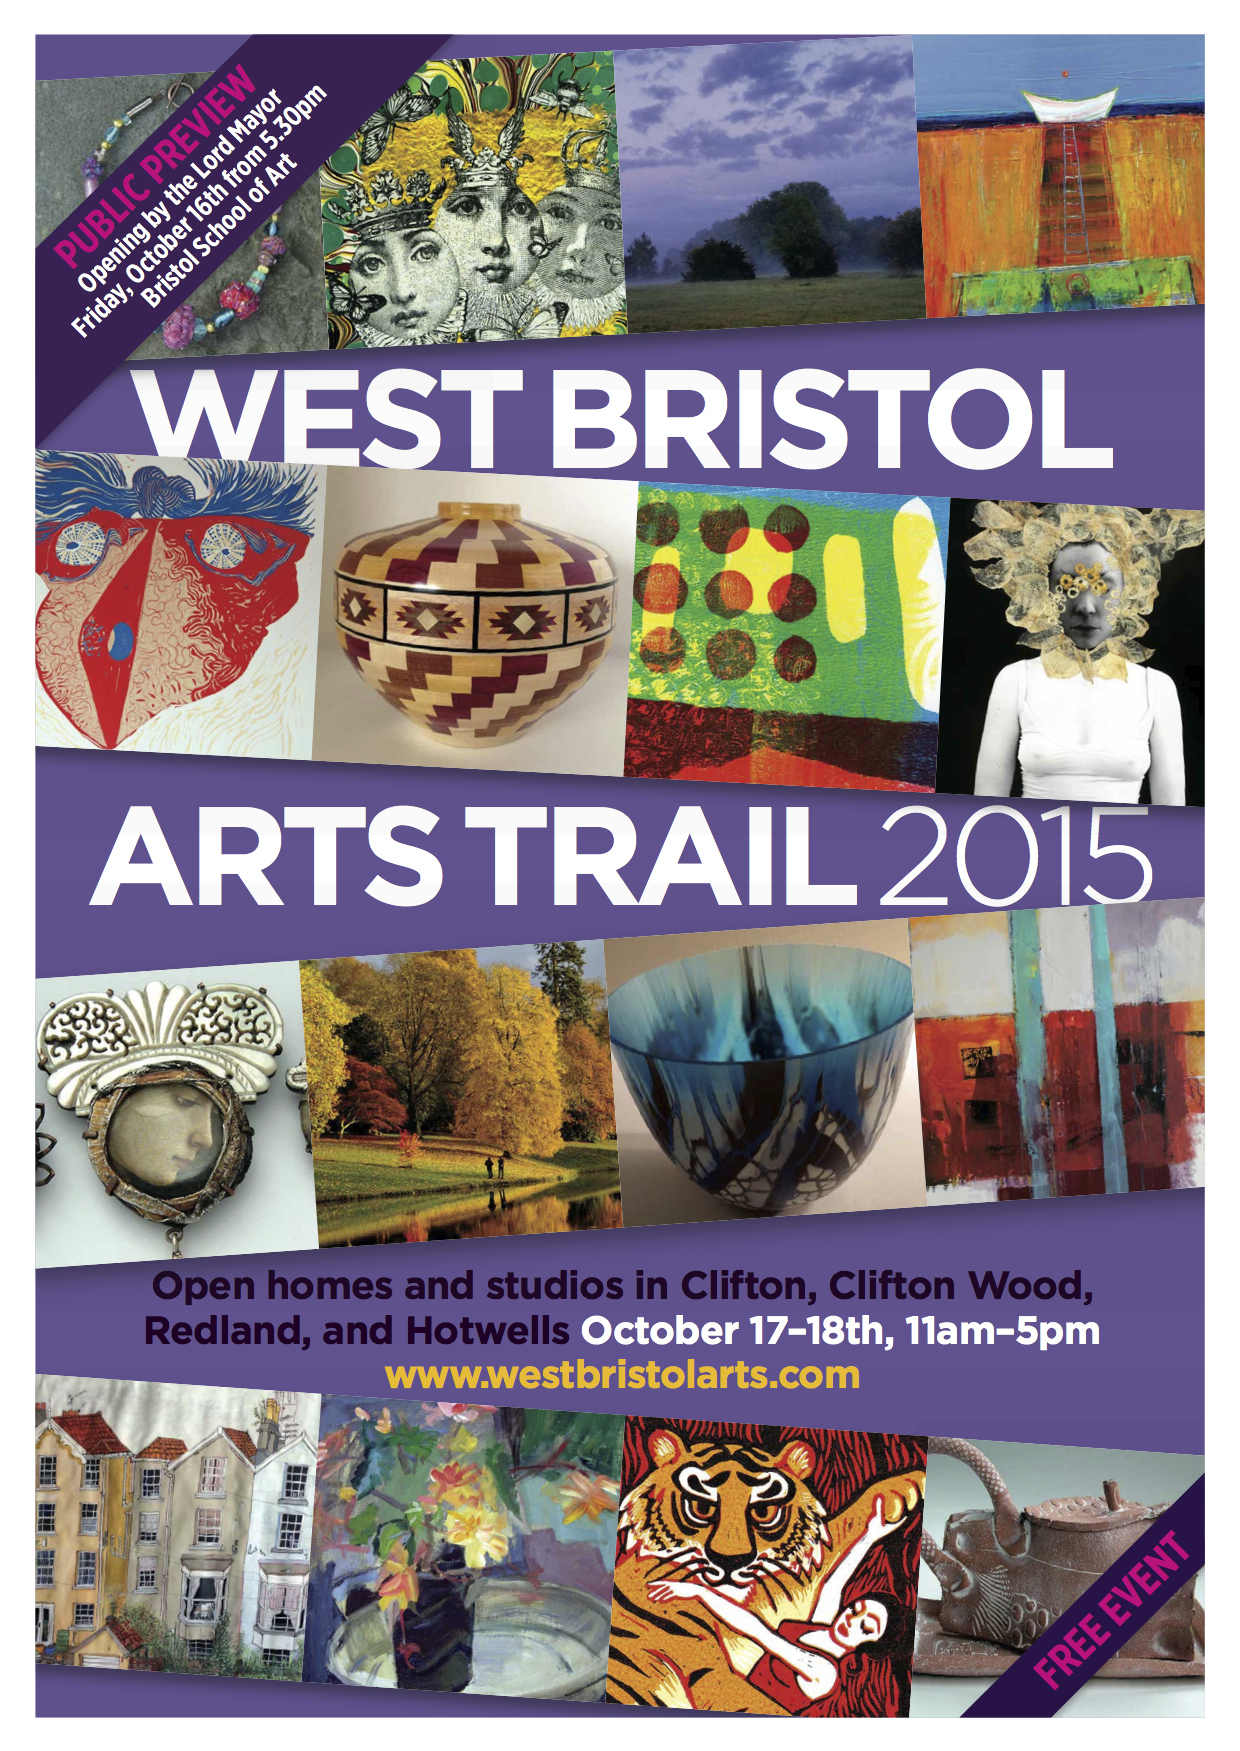 West Bristol Art Trail 2015